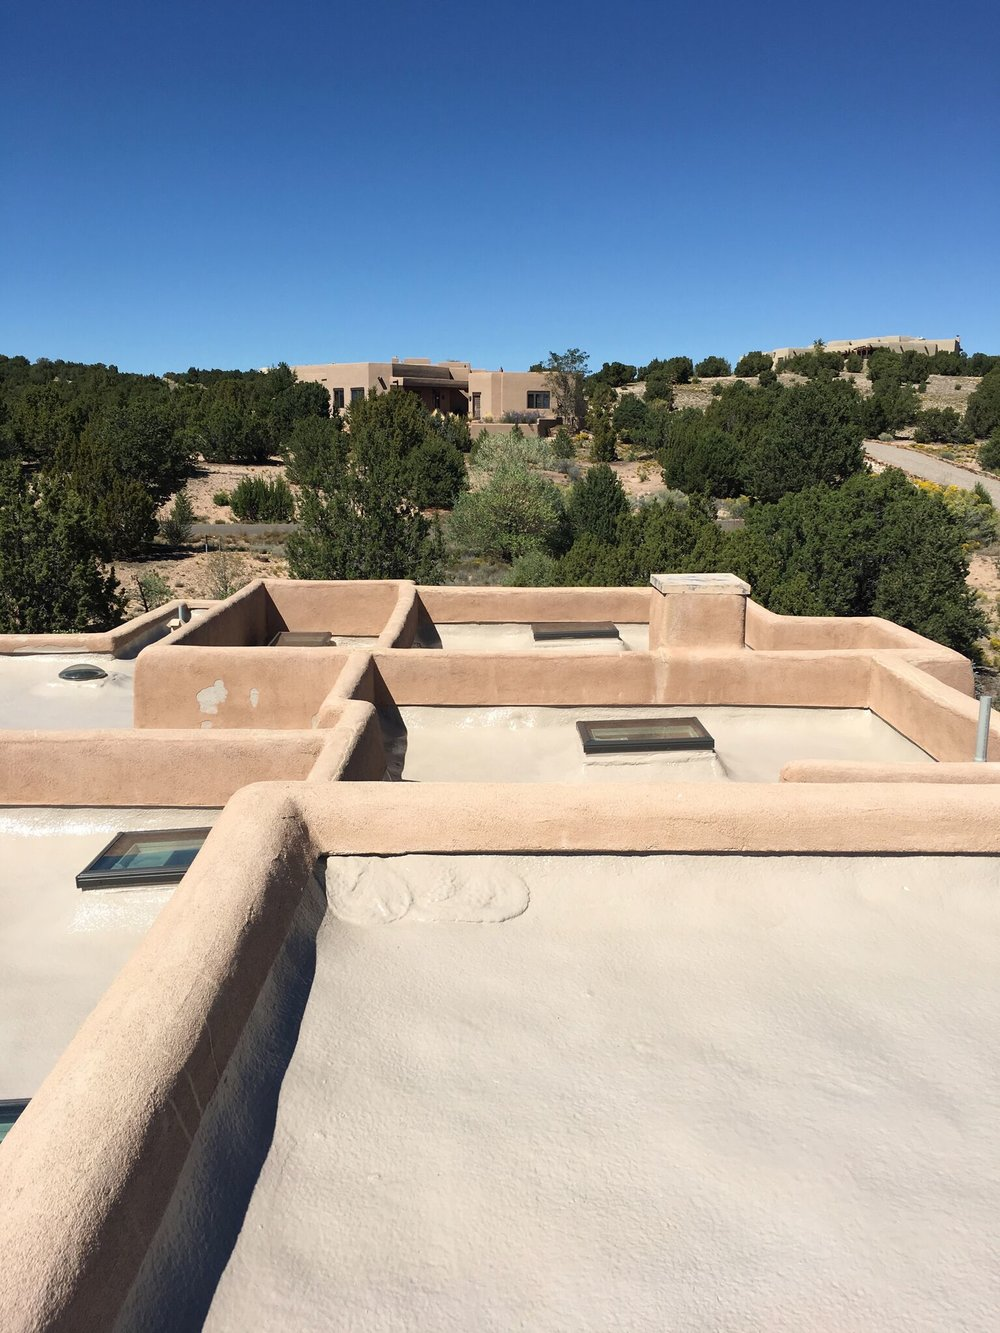 New Flat Roof in Santa Fe